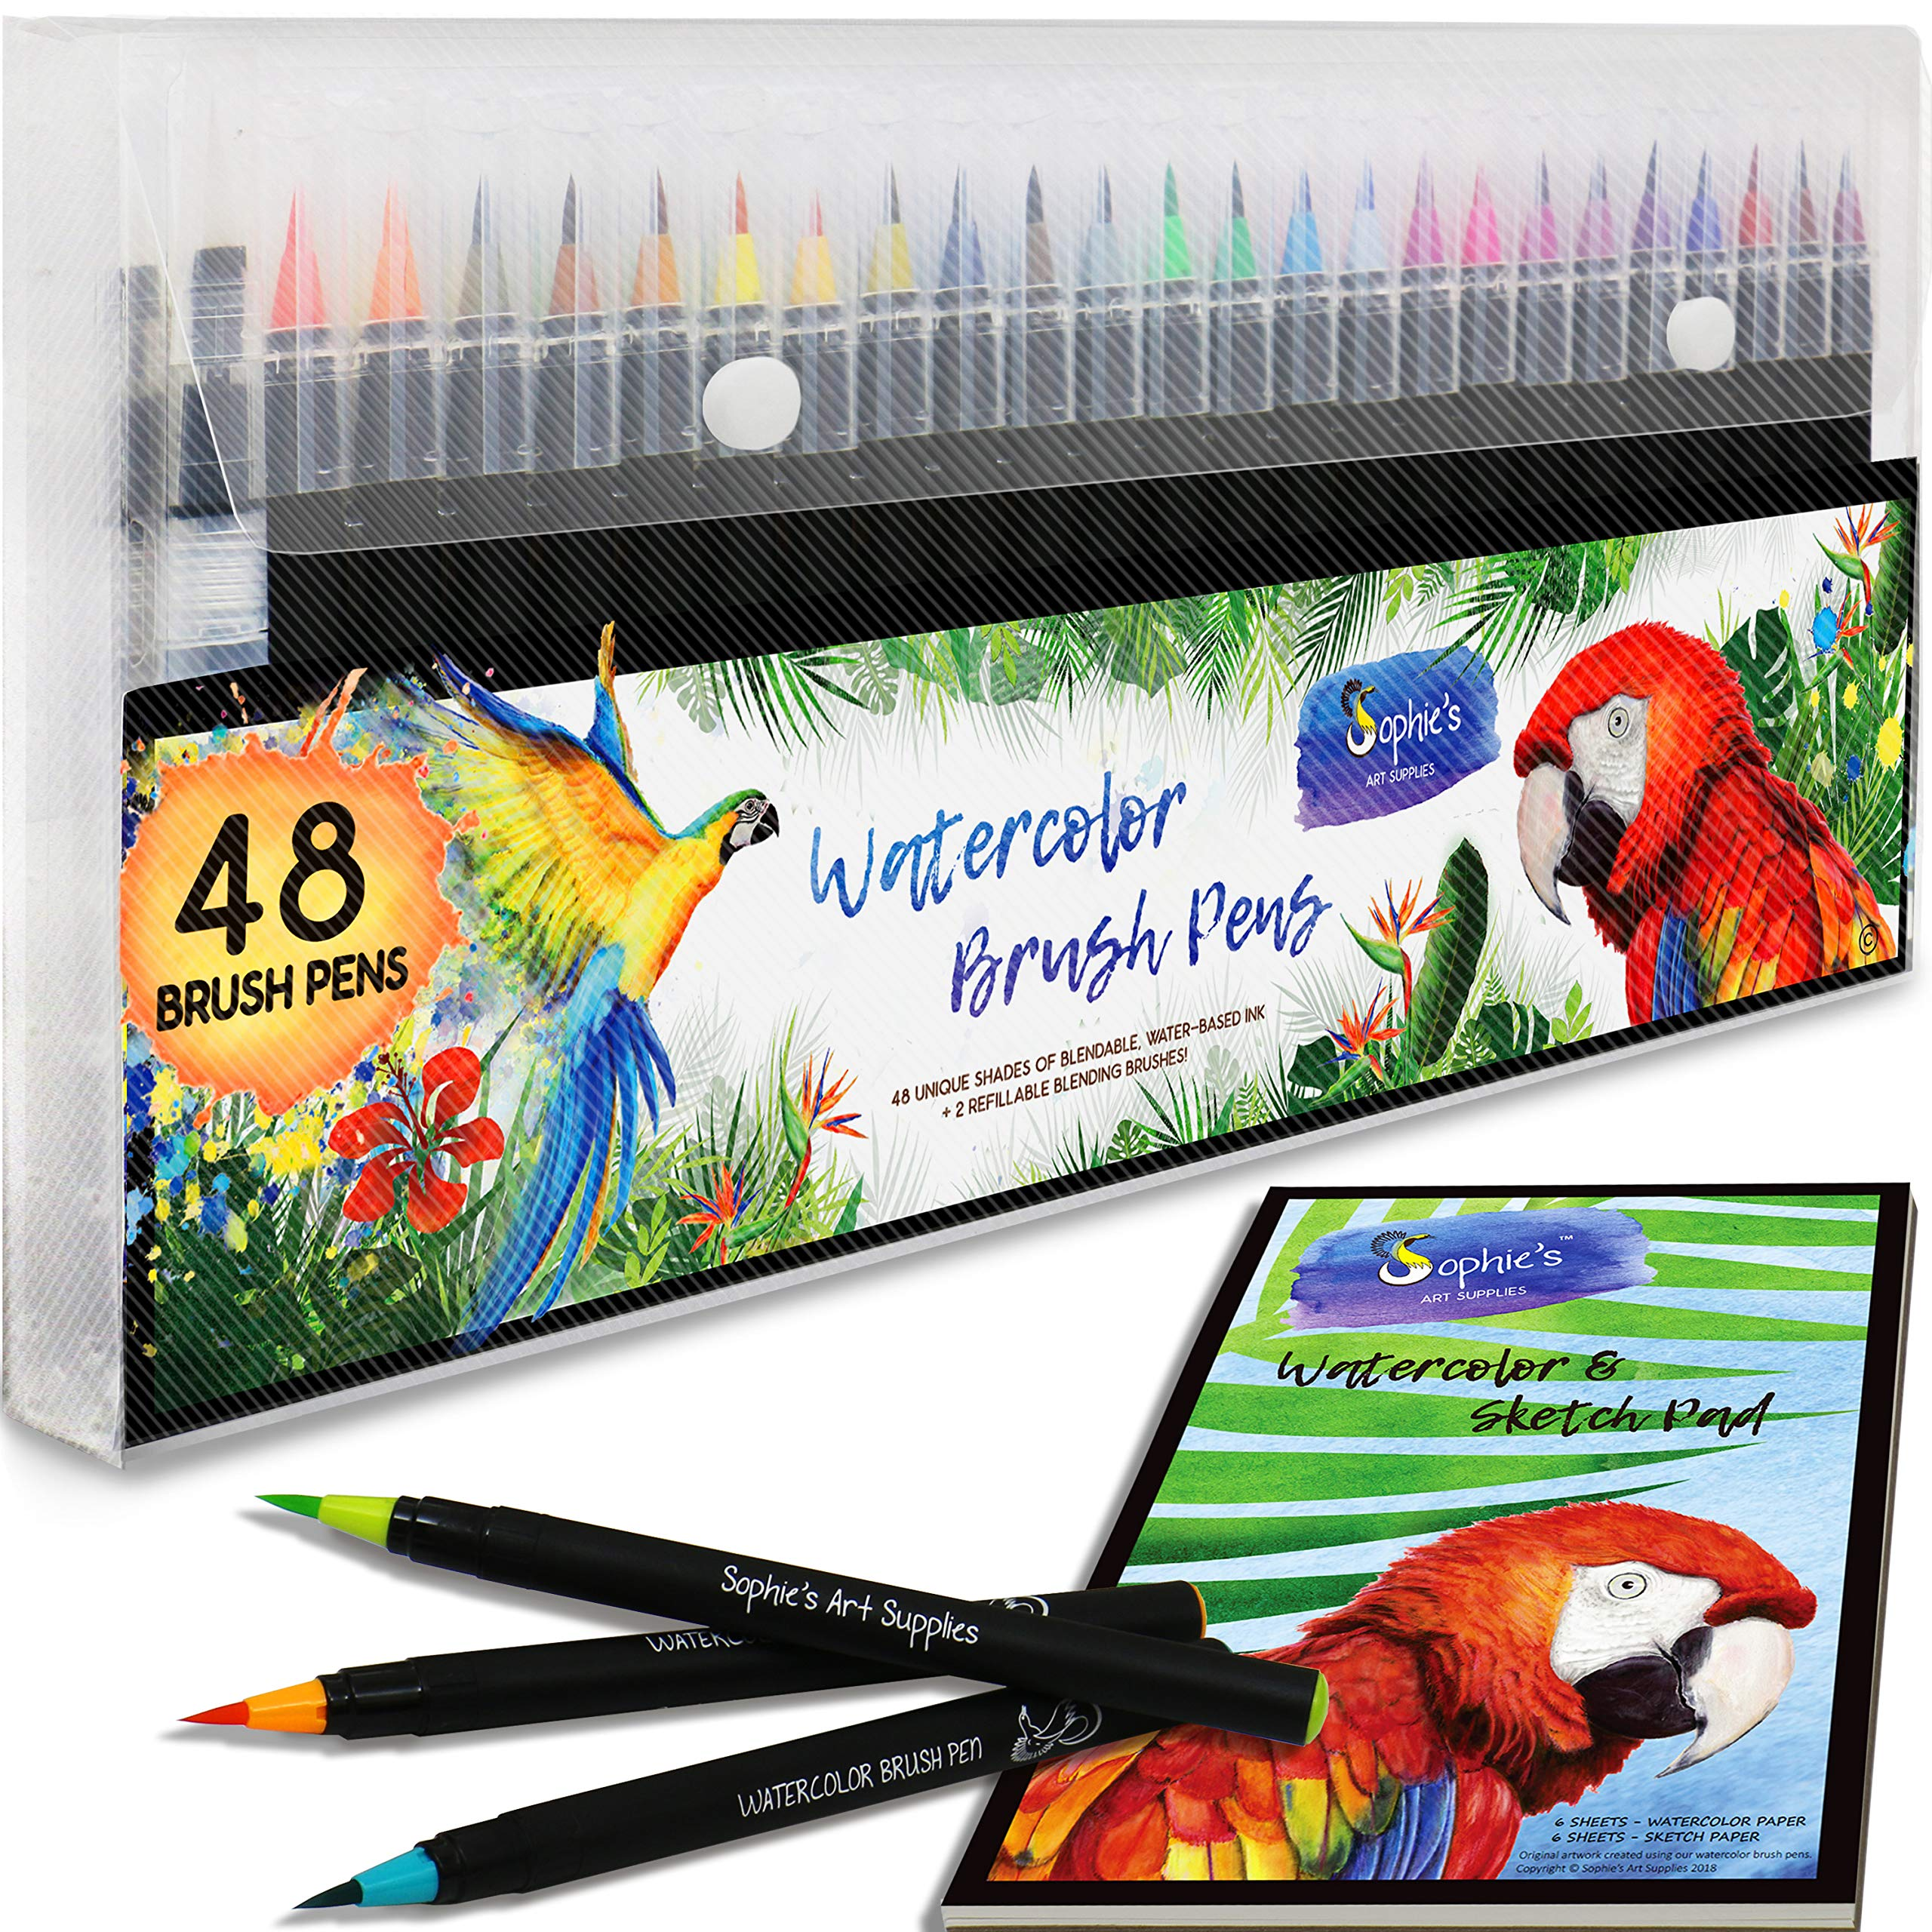 Premium Watercolor Real Brush Pens by Sophie's Art Supplies [48 Pack]. Vibrant Water Soluble Ink. Flexible Brush Tips for Watercolor Effects, Coloring and Calligraphy. Free Blending Brush + Pad! by Sophie's Art Supplies